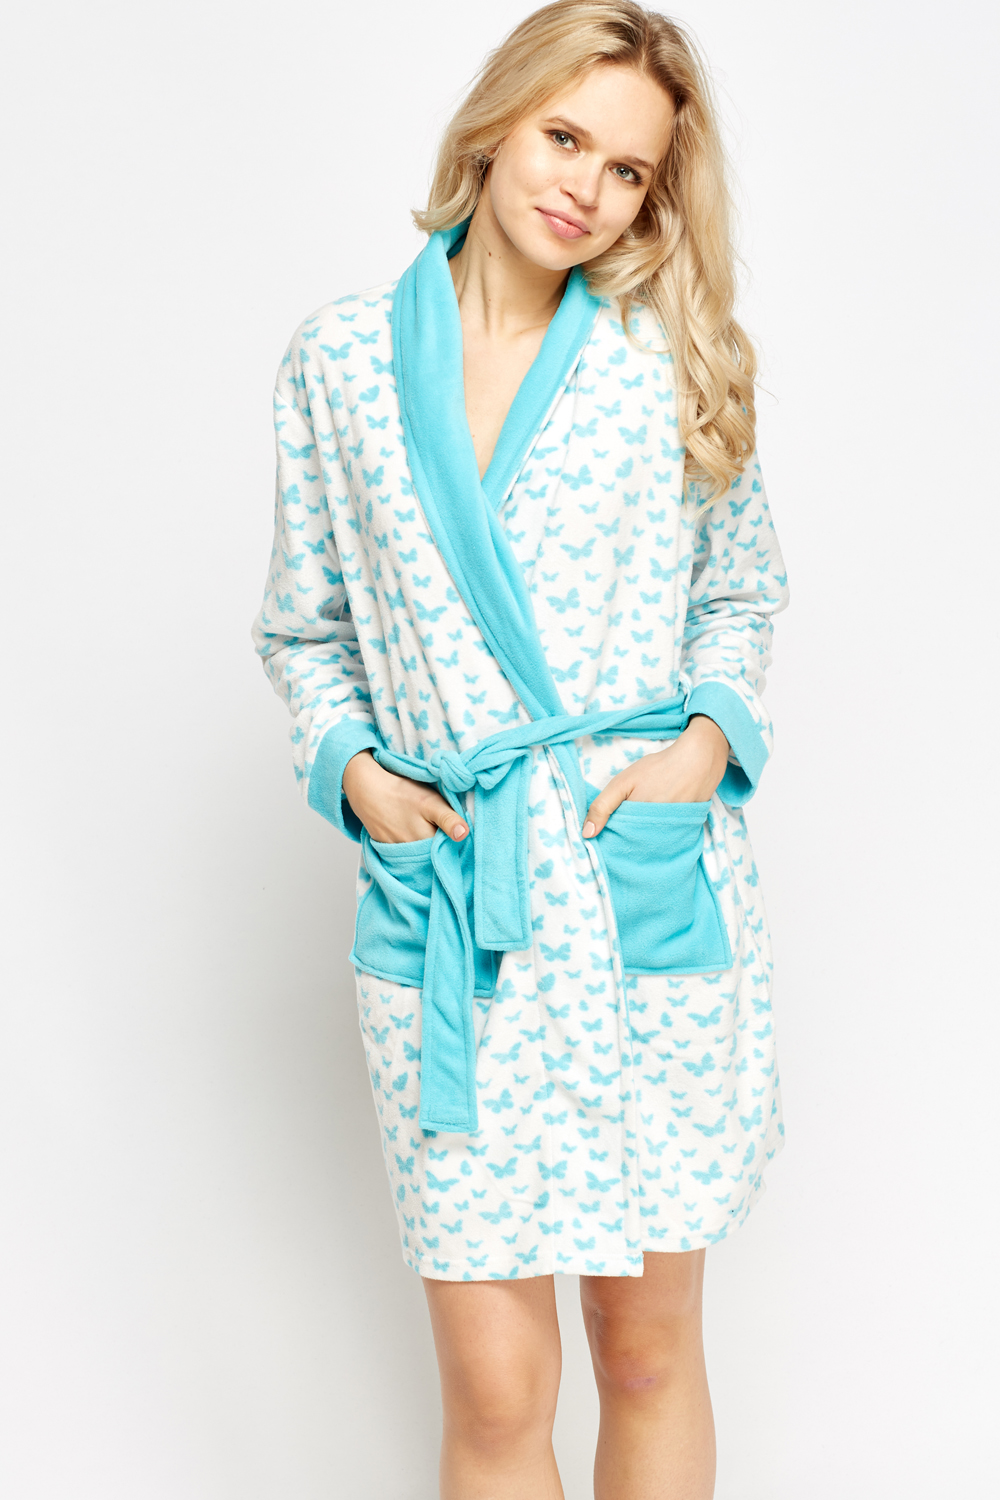 Butterfly Print Fleece Dressing Gown - Just £5